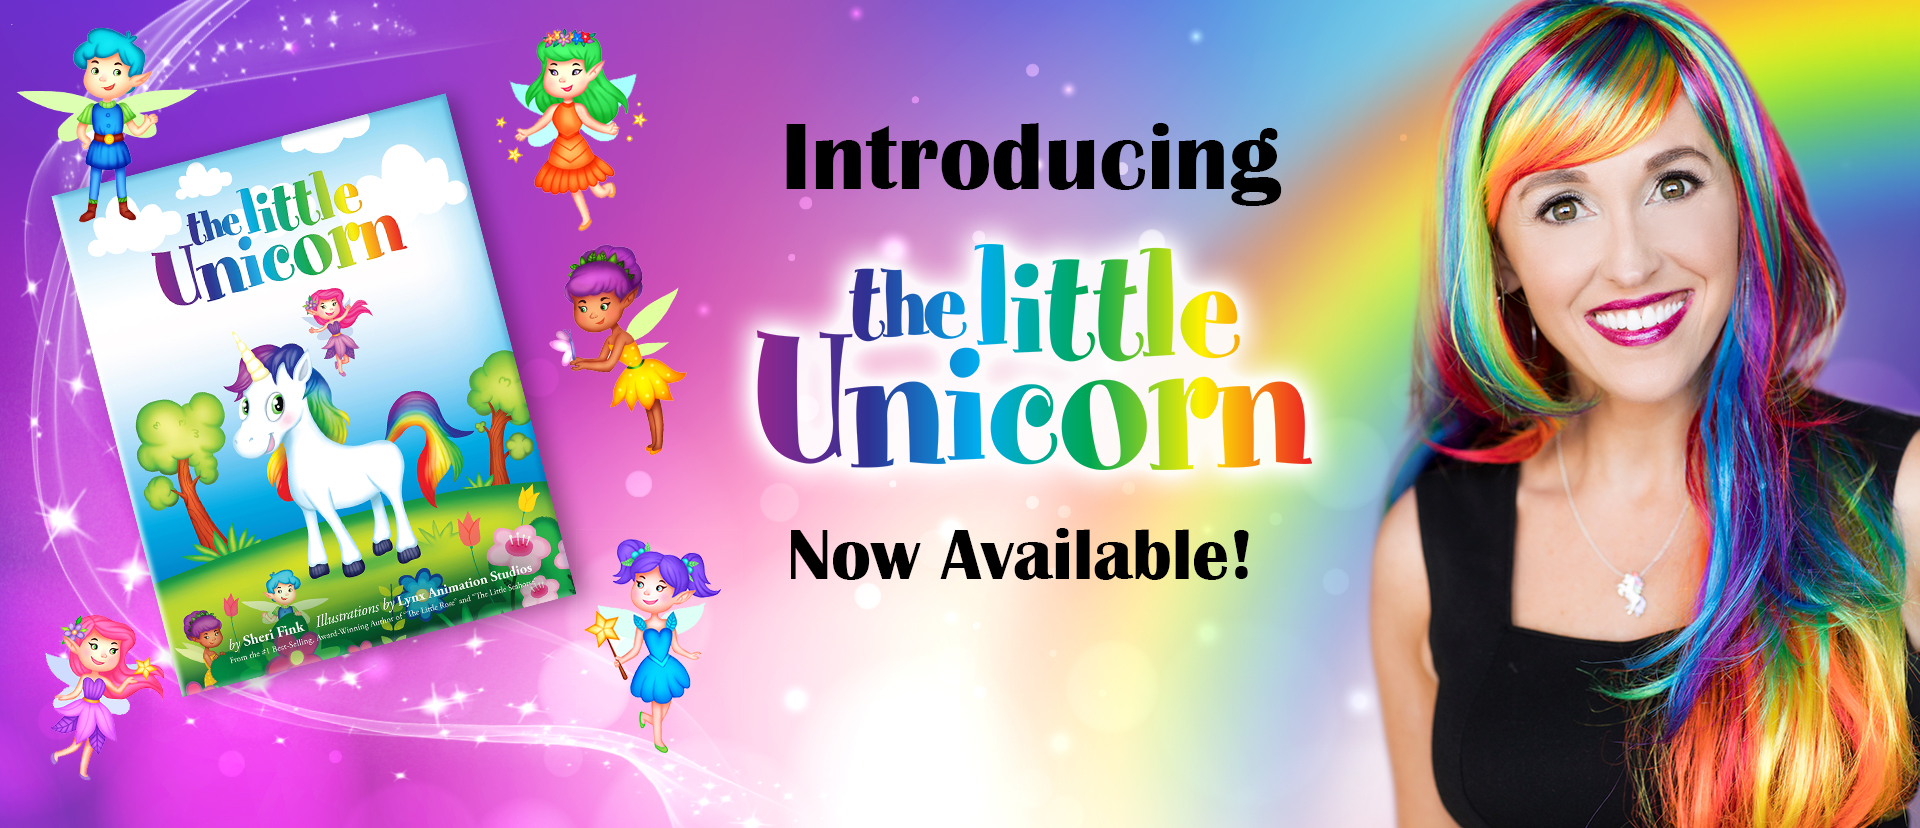 The Little Unicorn by Sheri Fink